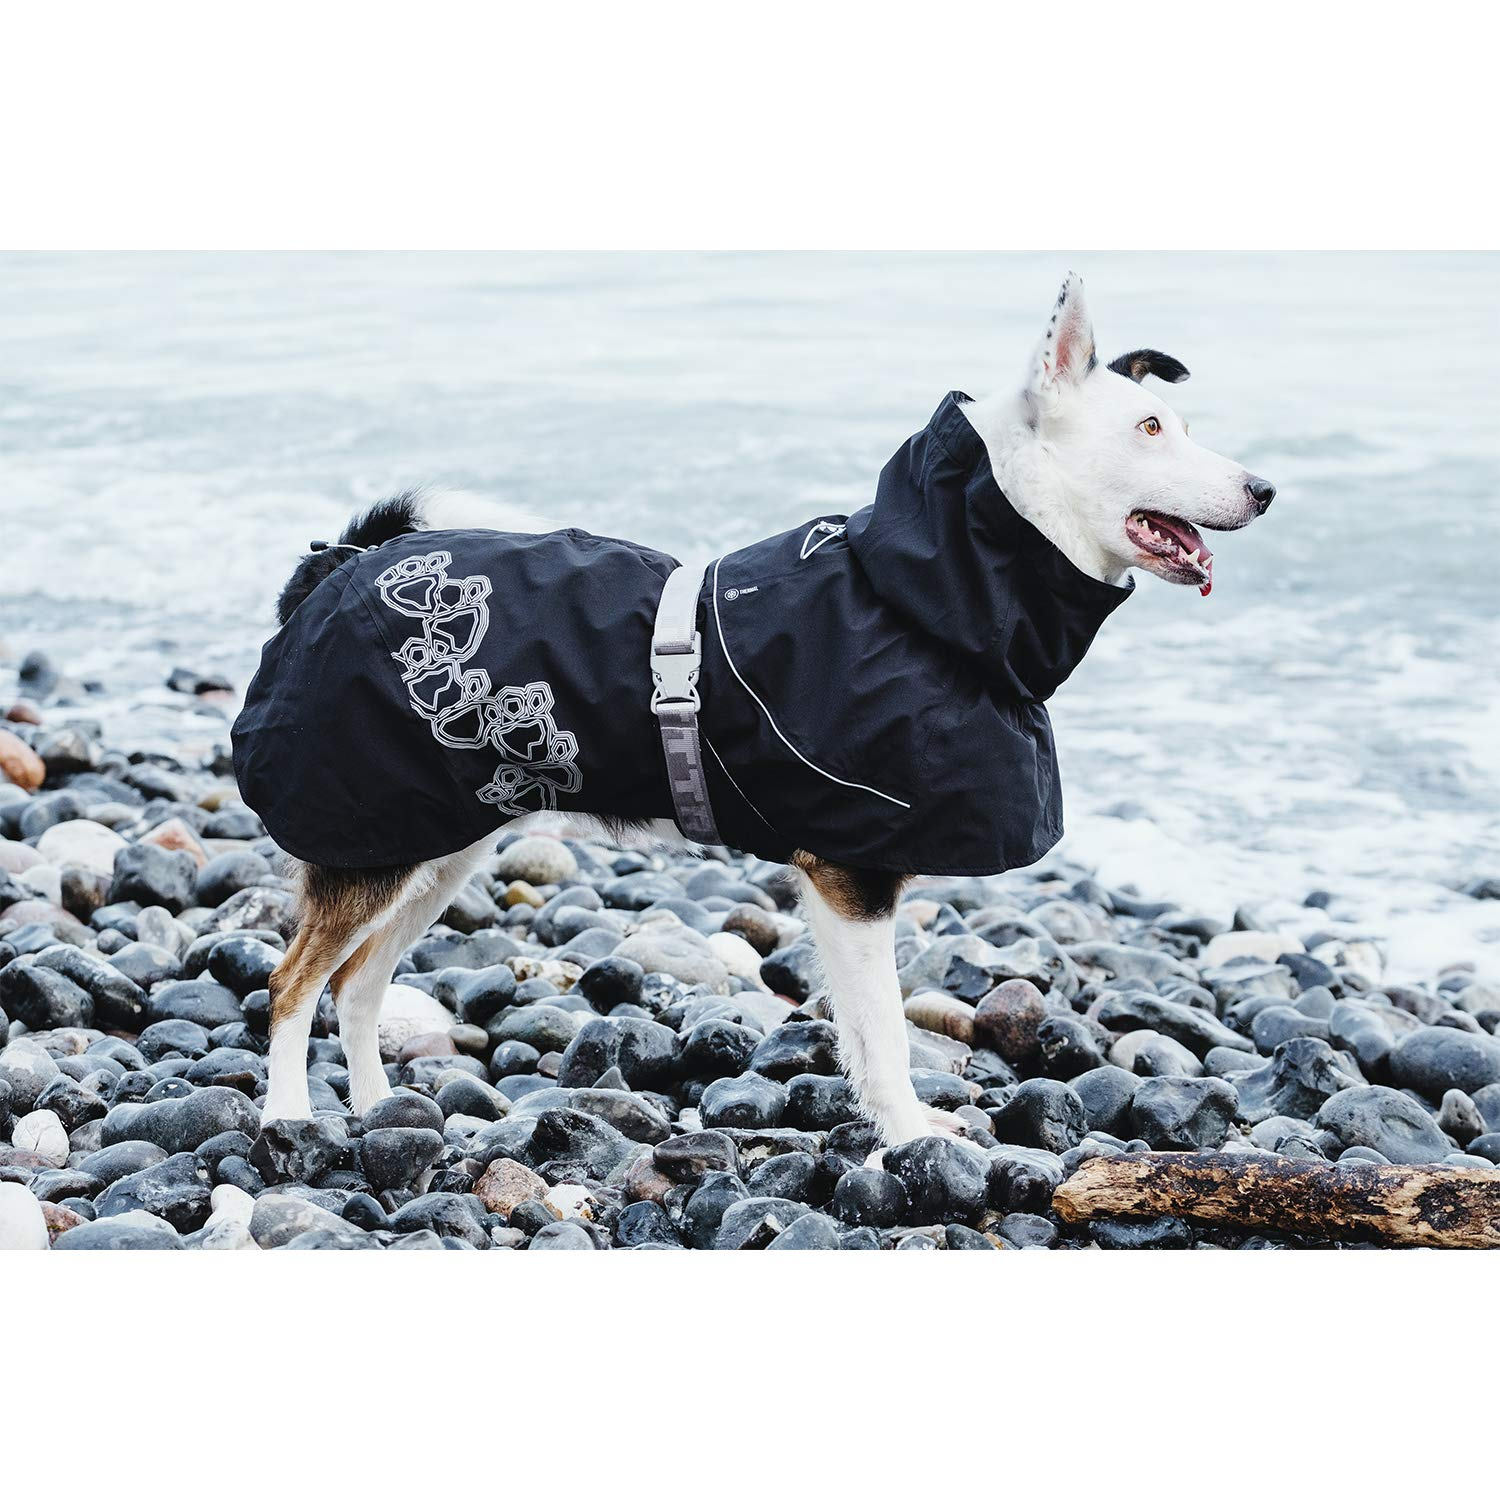 Hurtta Drizzle Coat, Dog Raincoat, Currant, 18 in by Hurtta (Image #3)